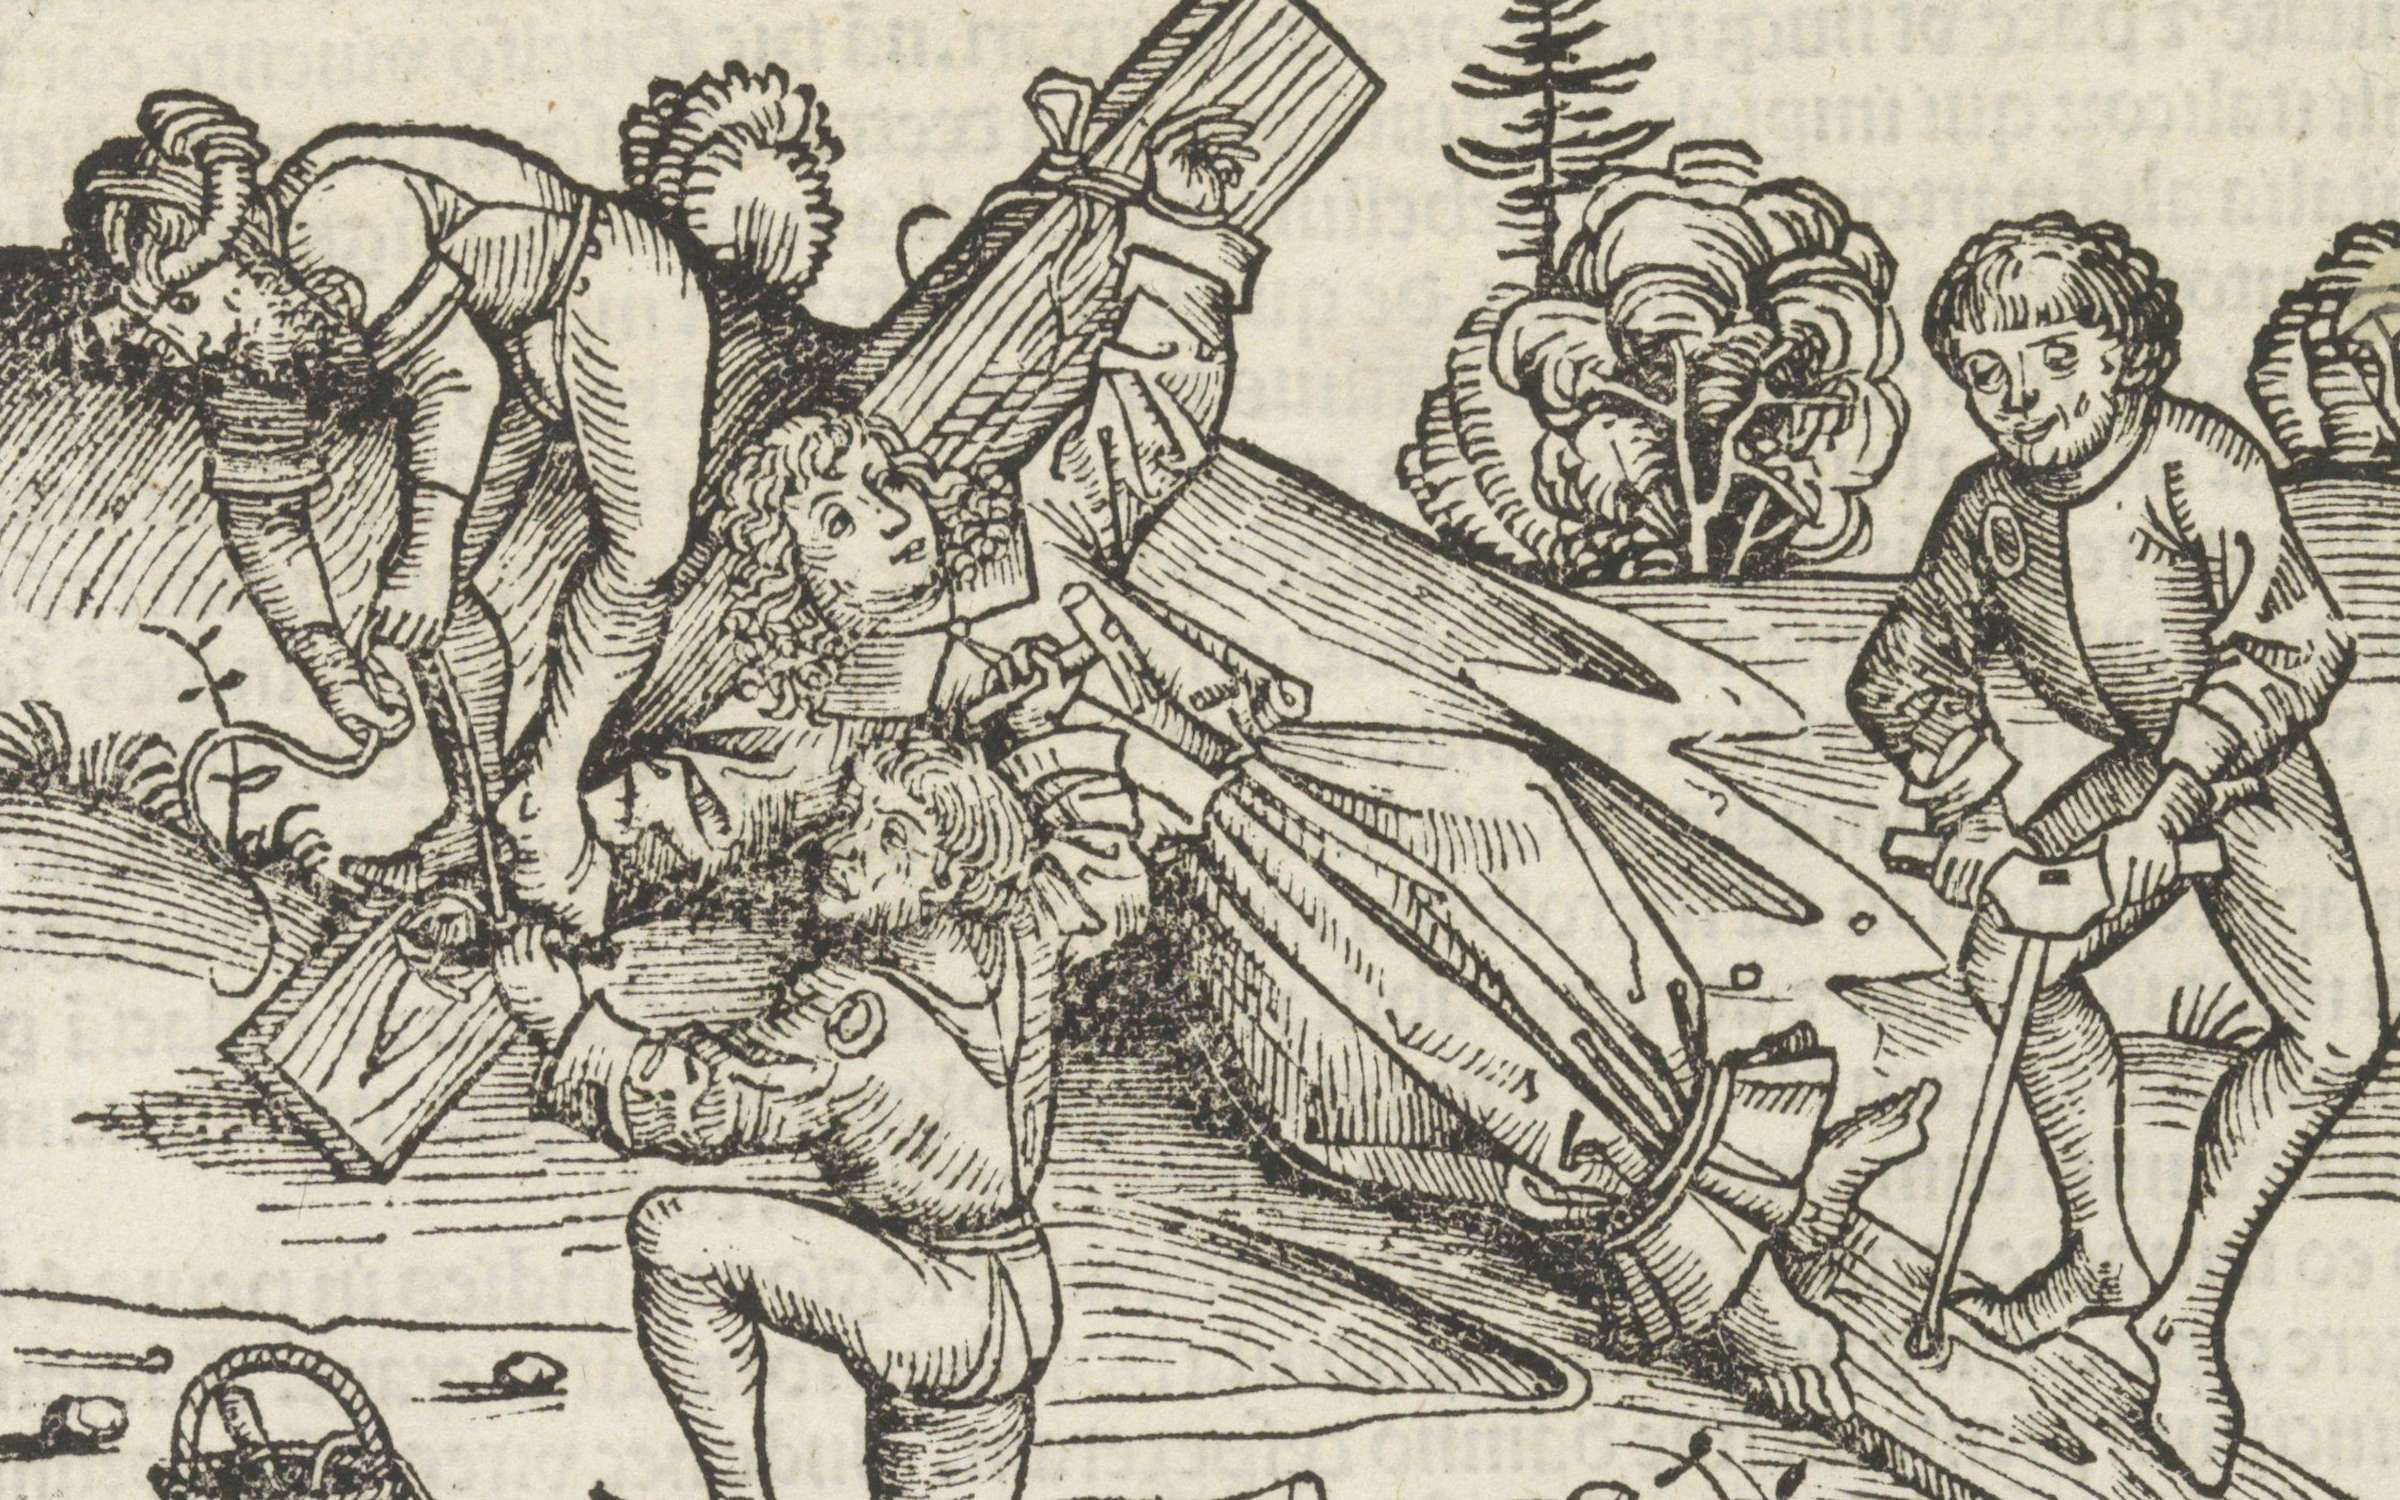 A 15th century woodcut made in Nuremberg of the crucifixion of William of Norwich. Credit: Rijksmuseum, CC0, via Wikimedia Commons